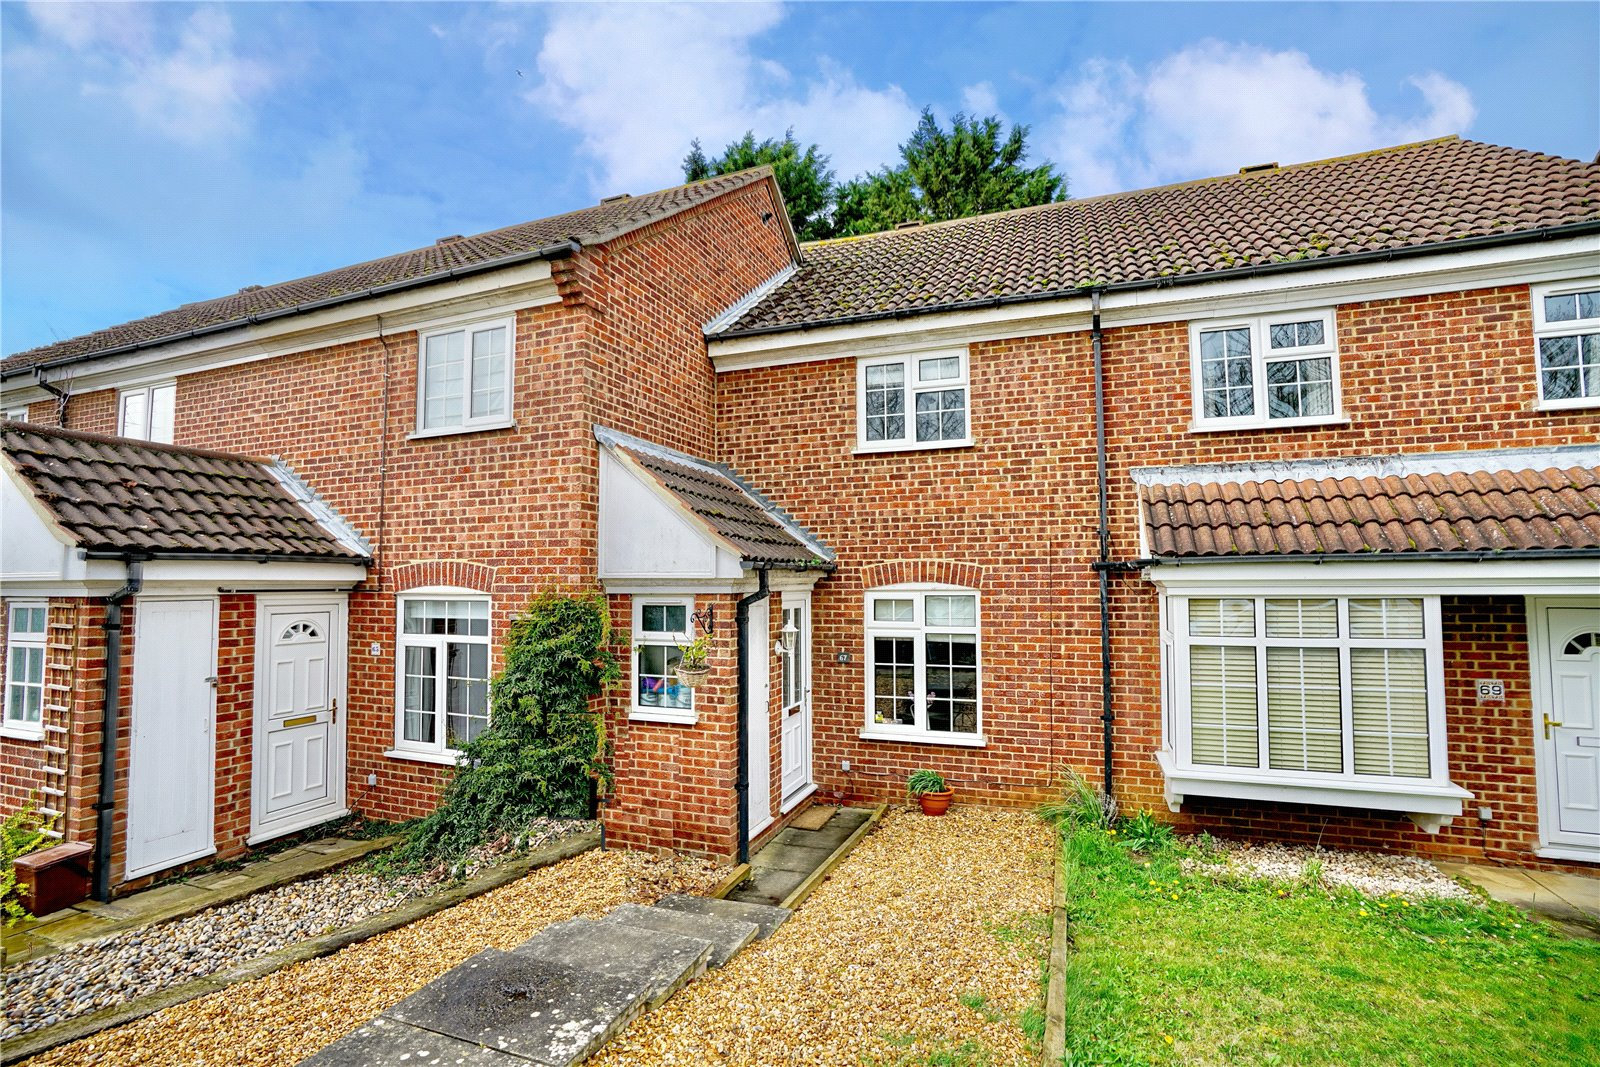 2 bed house for sale in The Paddocks, Potton  - Property Image 1